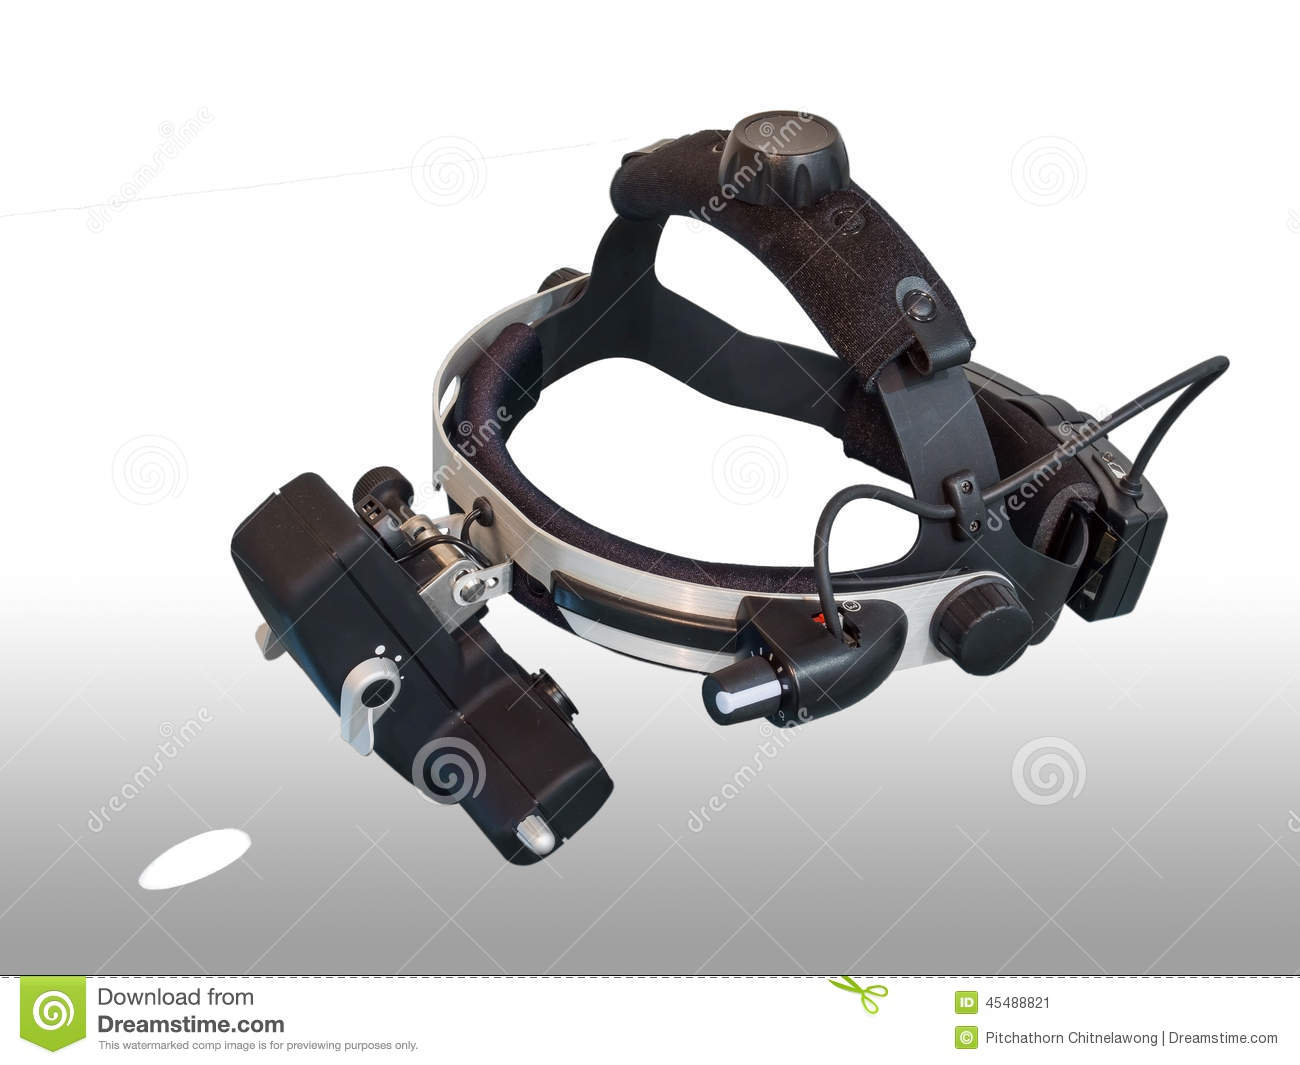 Indirect Ophthalmoscope Is Instrument For Eye Examination